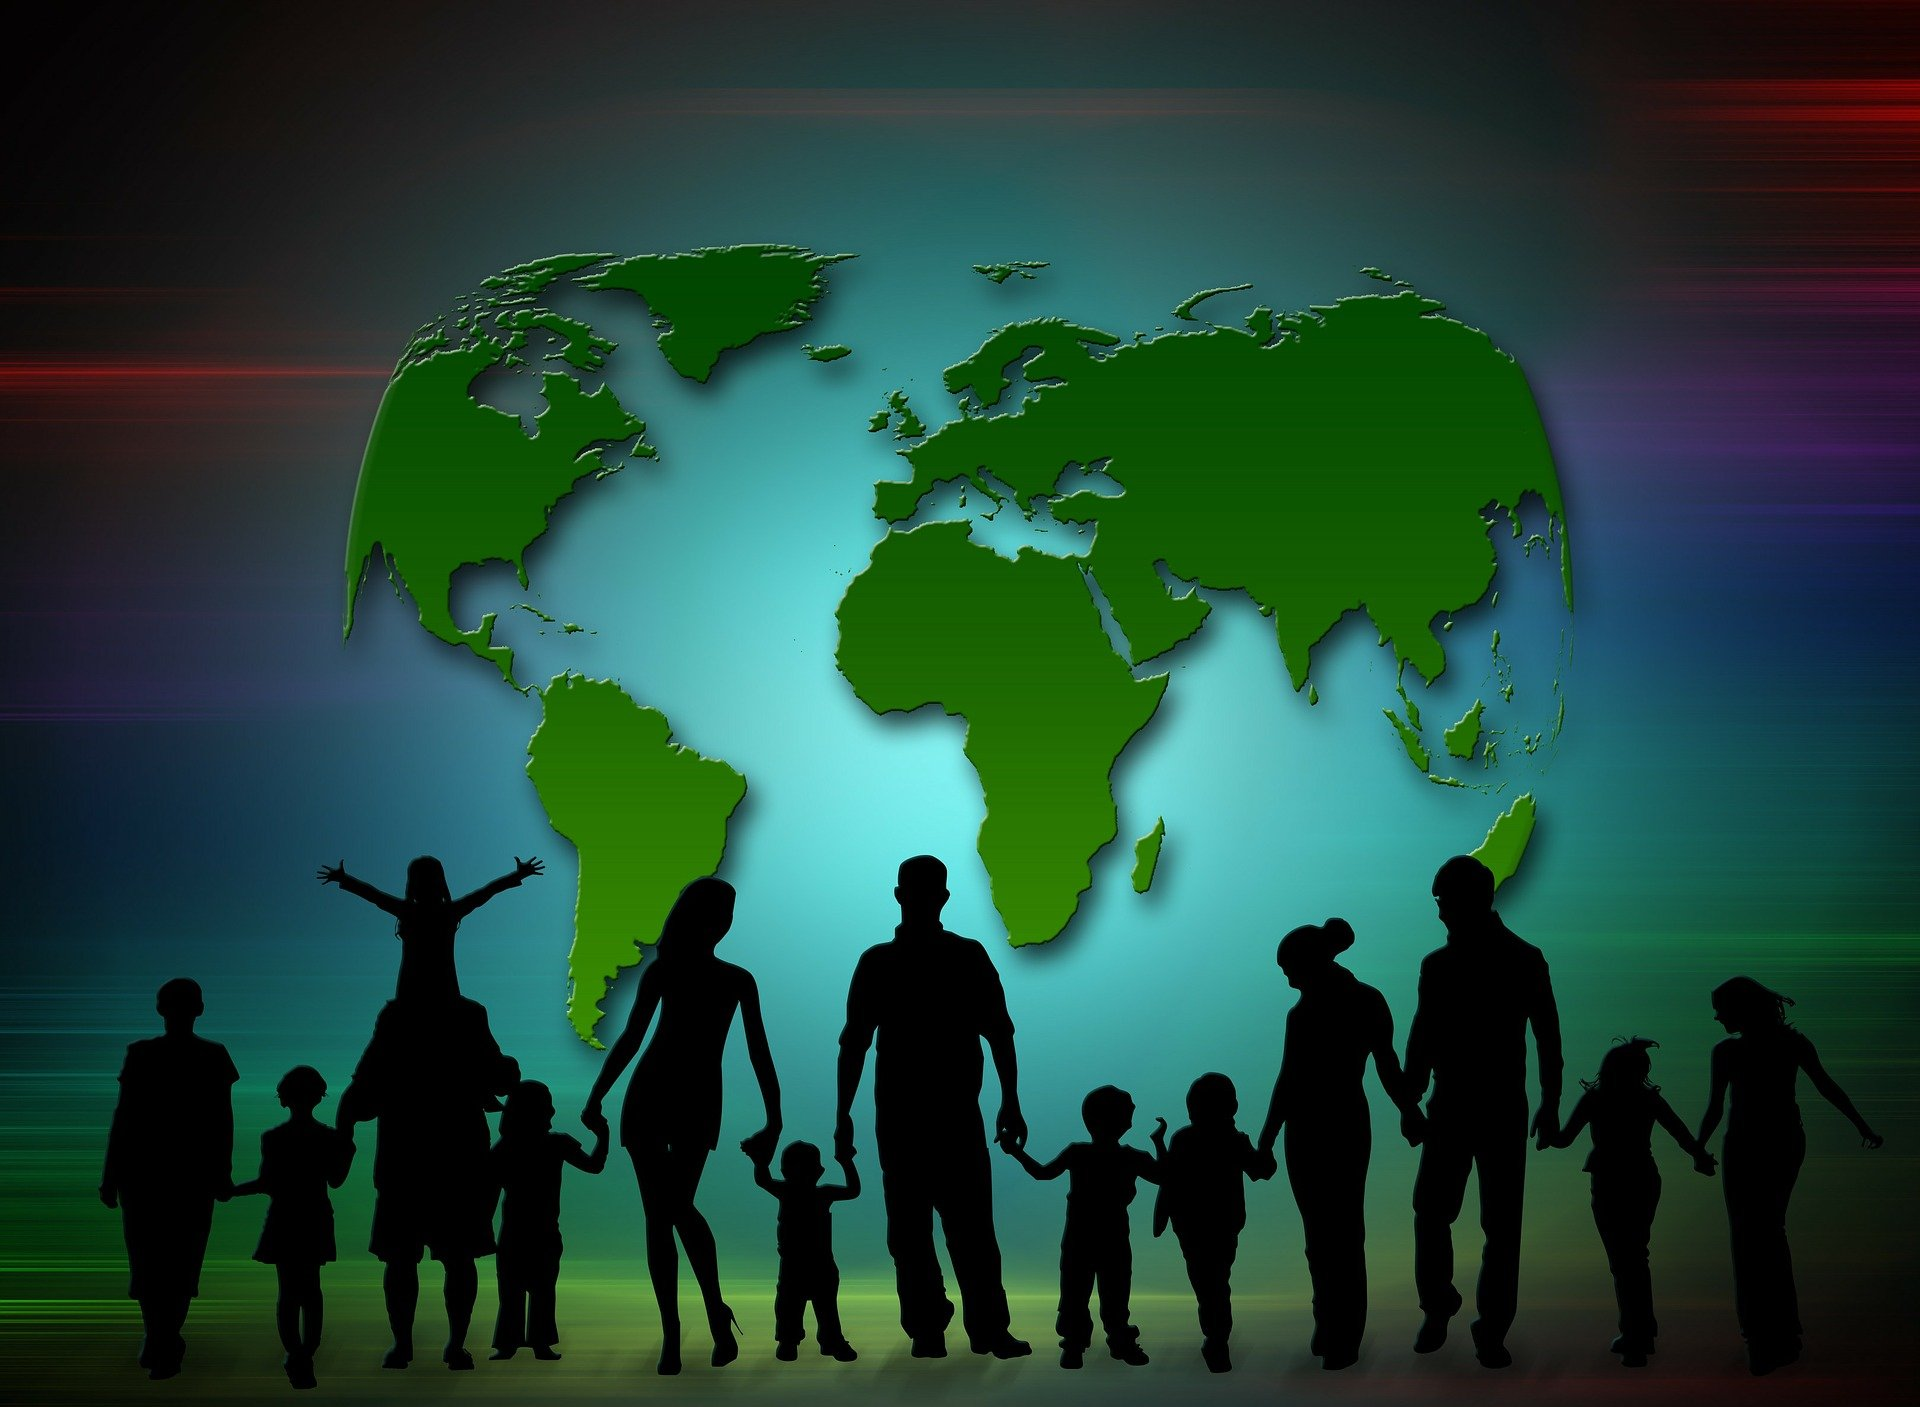 Illustration of parents and children coming together worldwide. | Source: Pixabay.